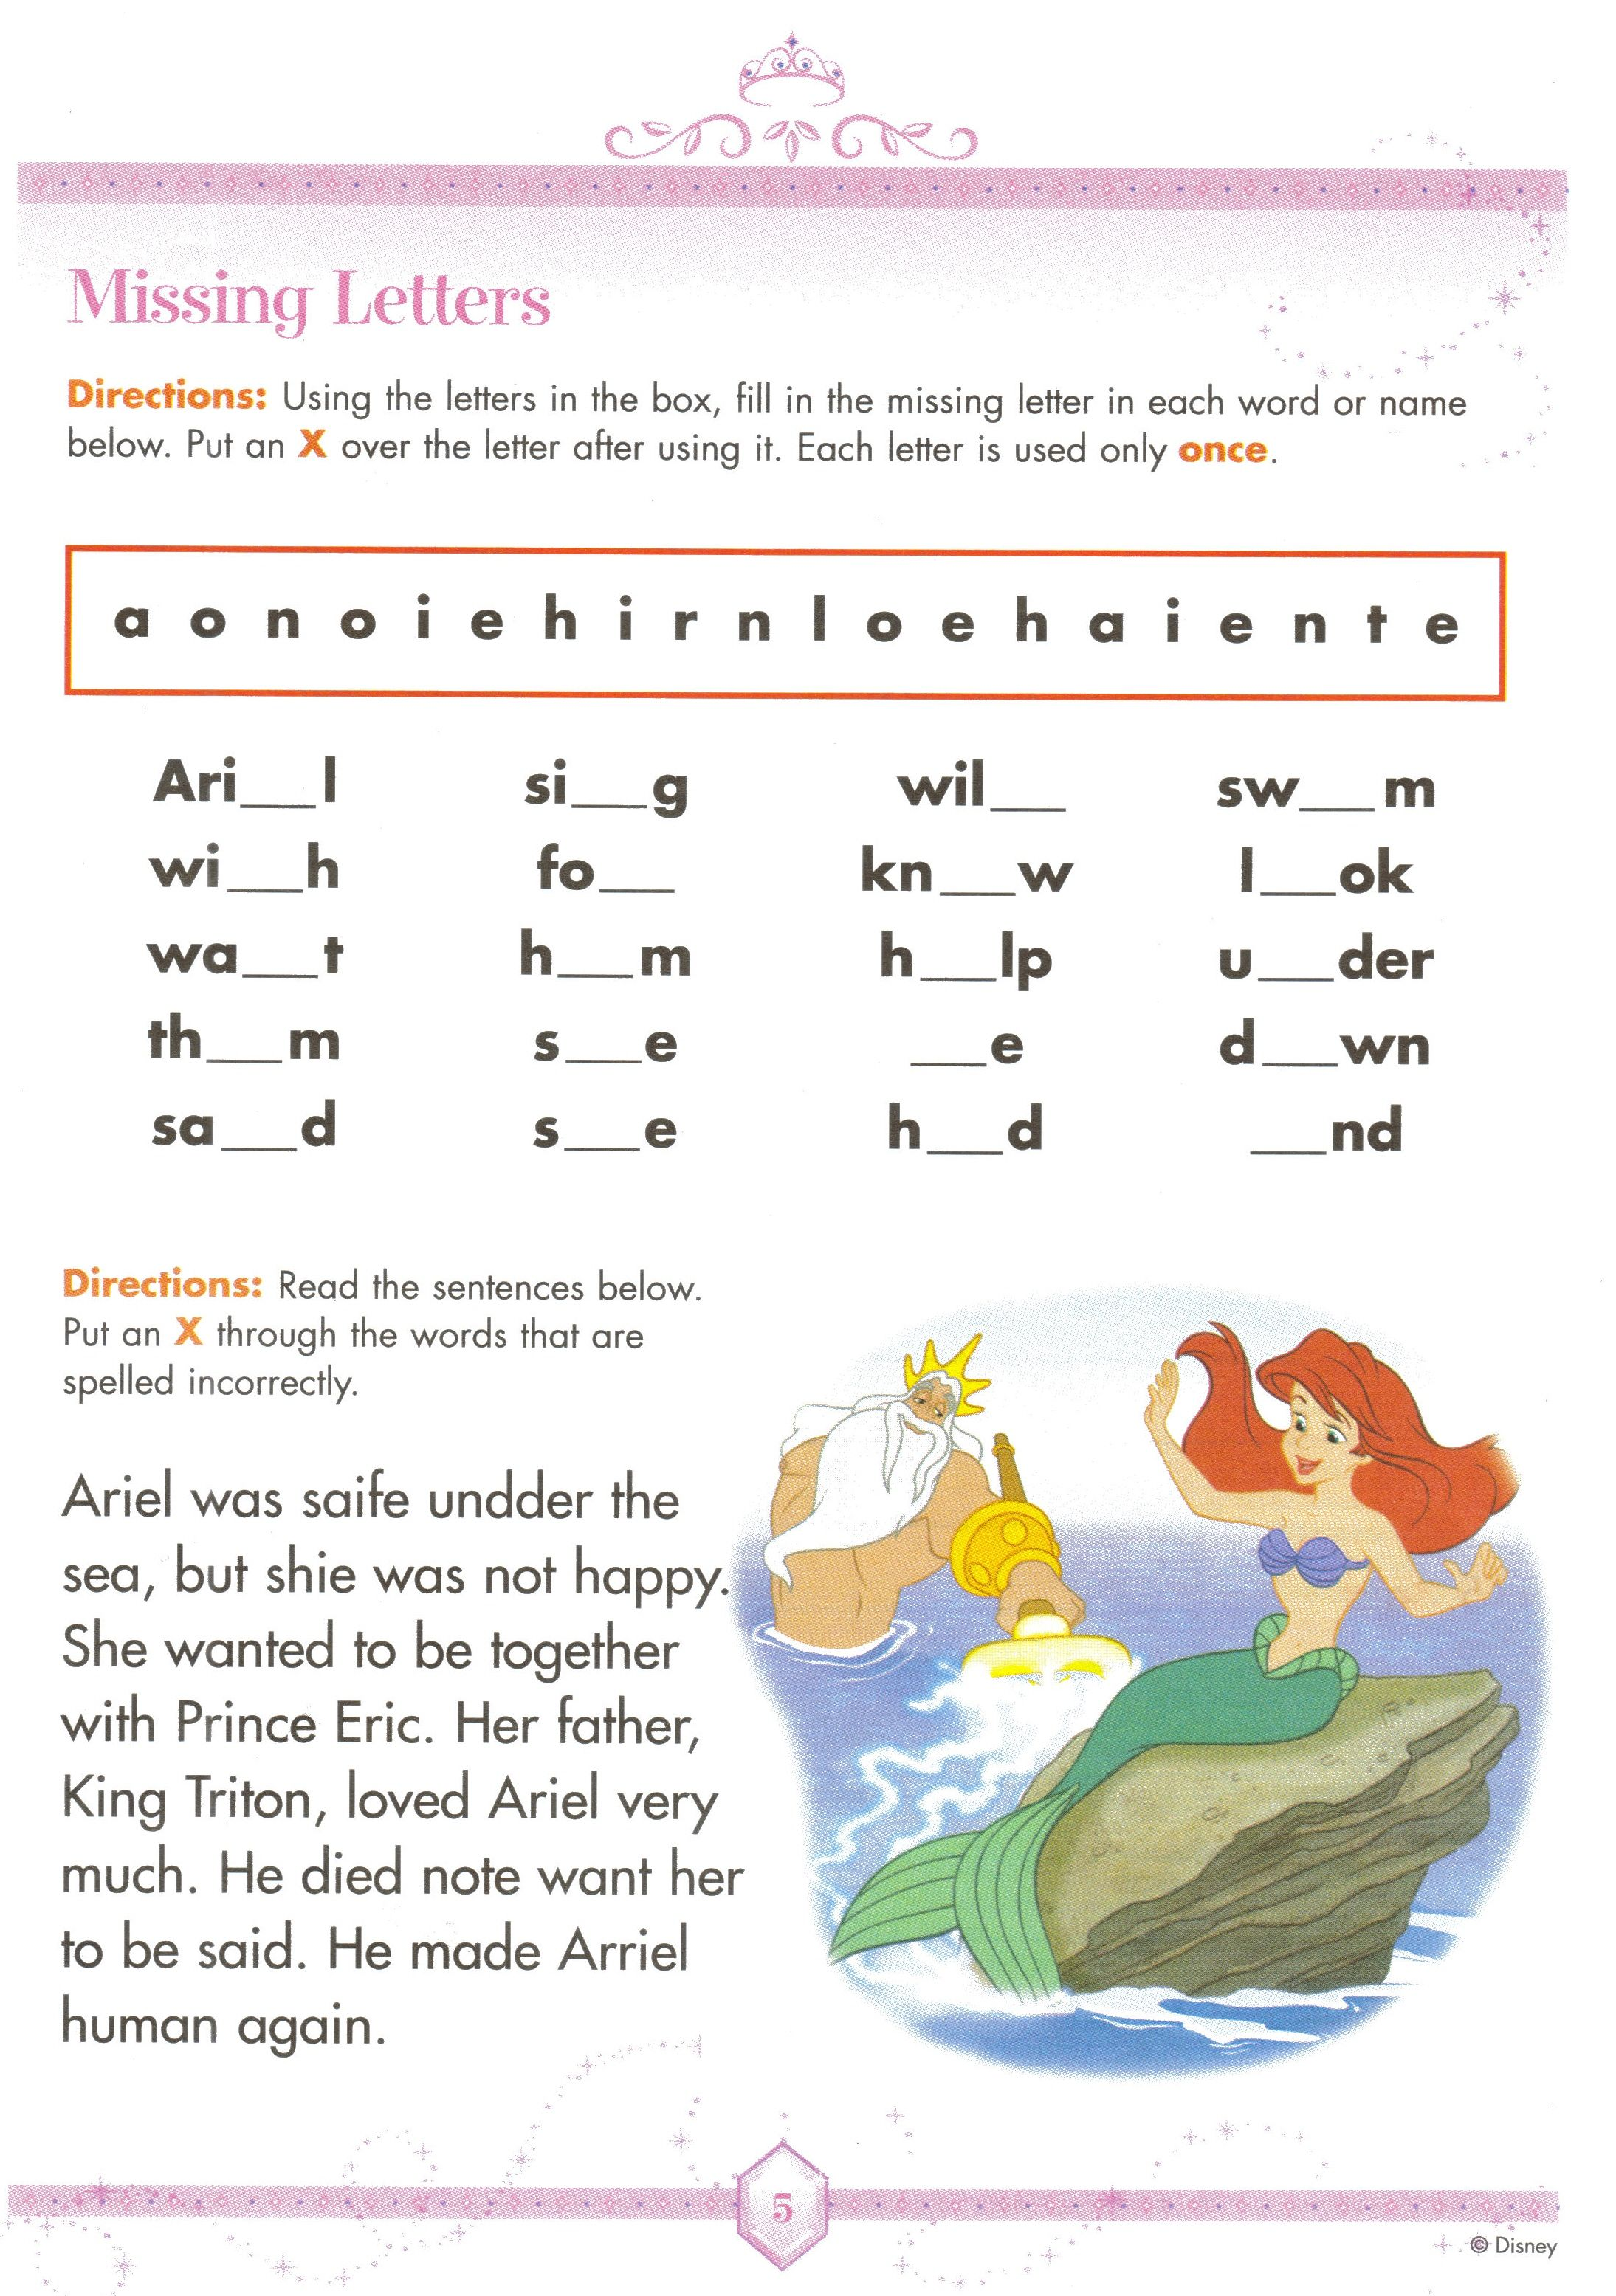 Worksheets Disney Worksheets disney worksheets here are two activity sheets from the httpdisney stationary comdisney learningworksheets